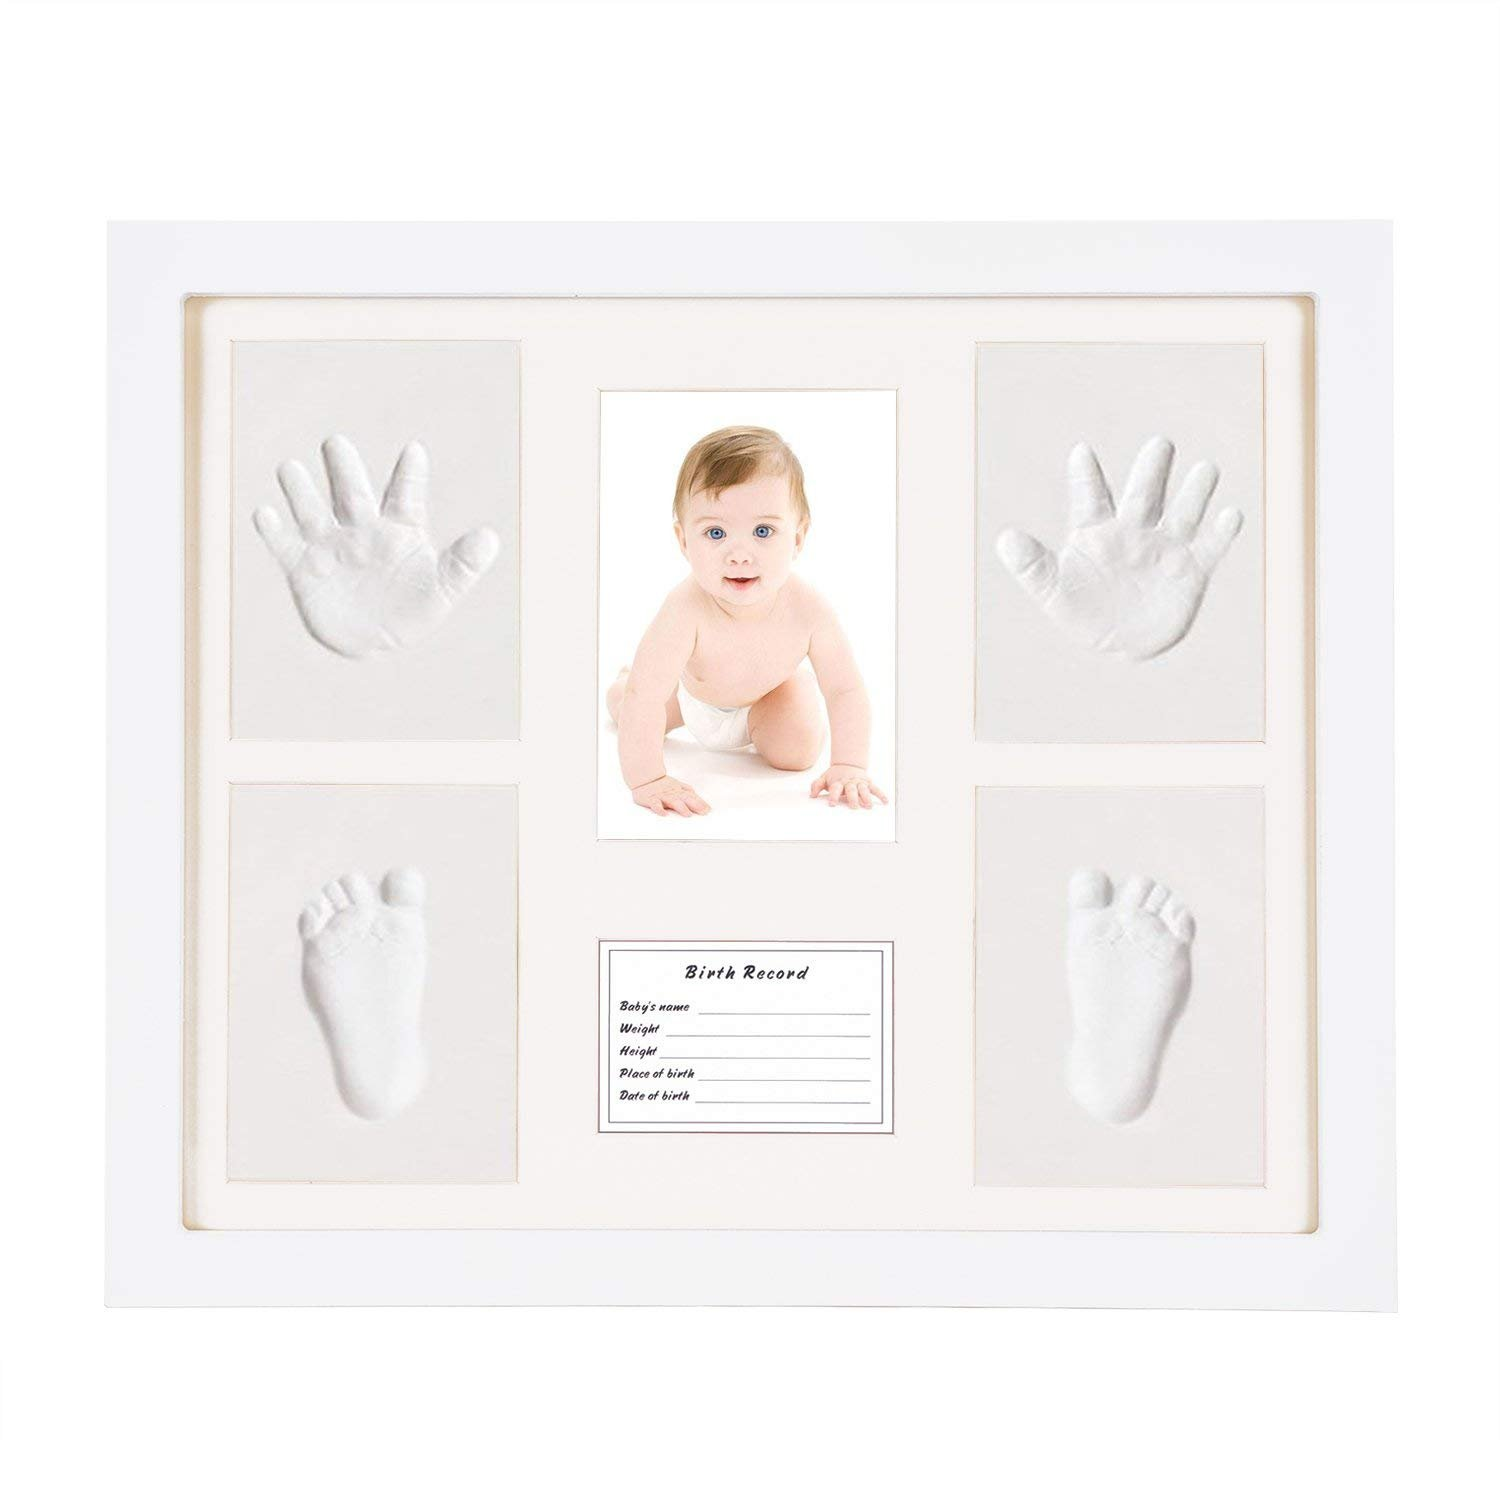 Baby Handprint Footprint Picture Frame Kit-HOBFU 1.9x10.5x18 inches Keepsake Boxfor Newborn DIY Creative Room Wall Table Décor Pictures (Wooden Frame + White Inkpad) Non Toxic Clay